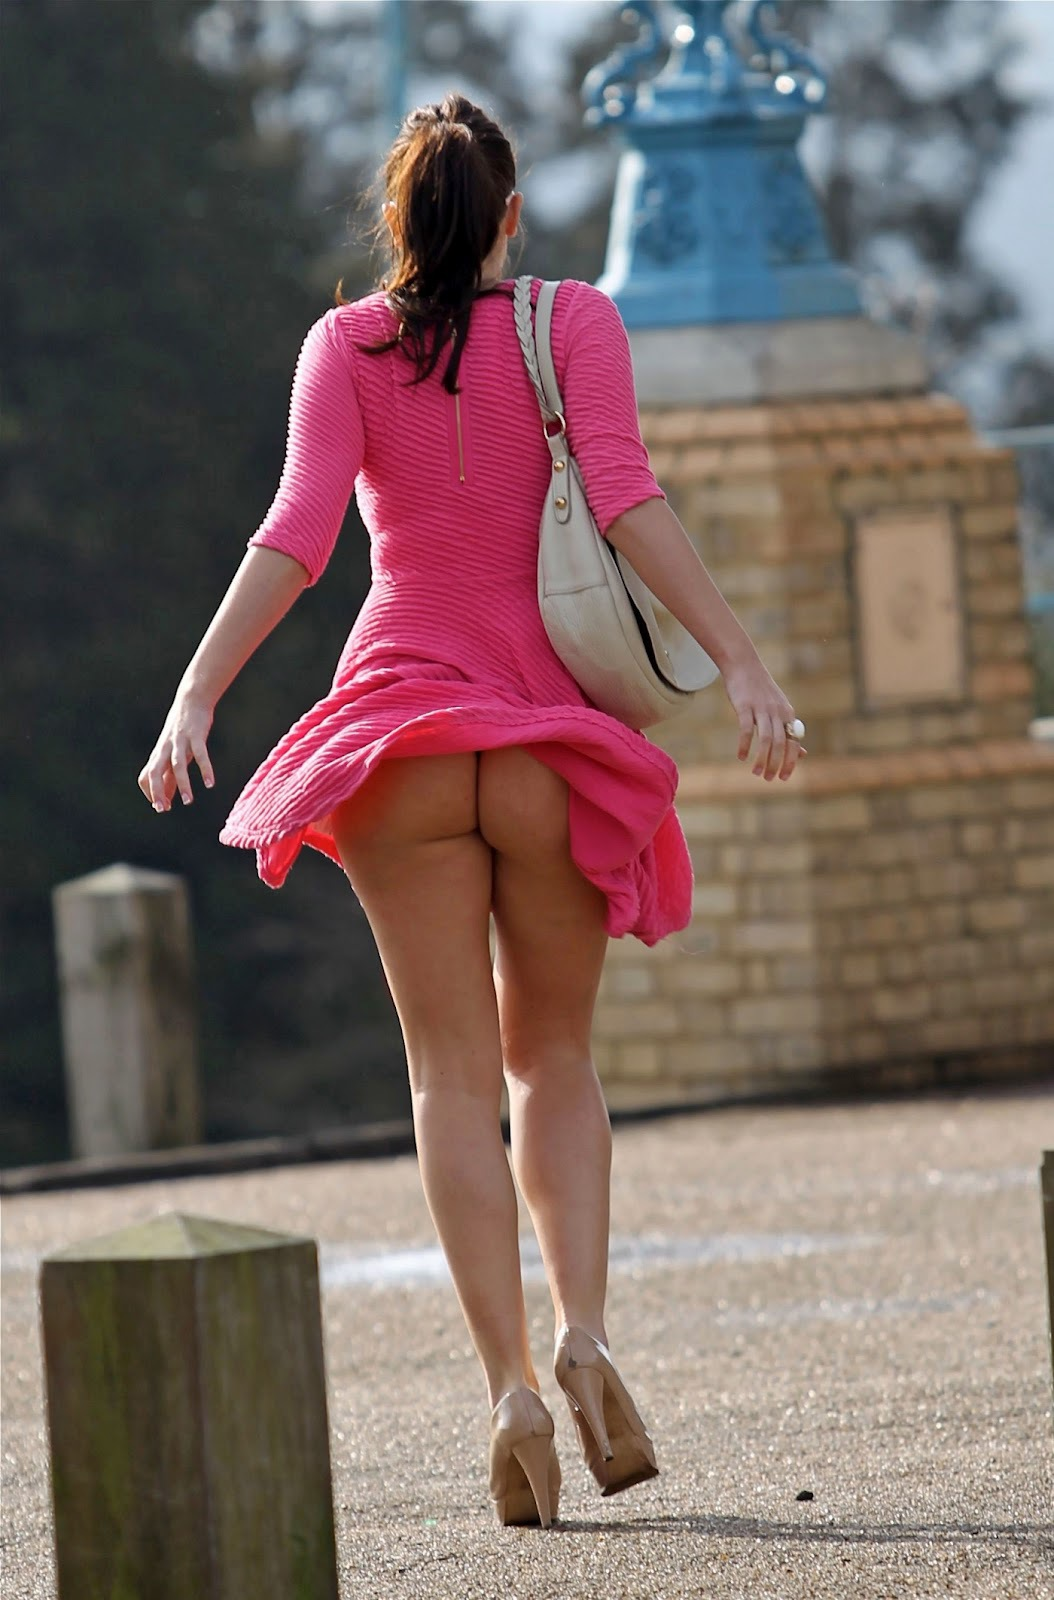 chienne soumise free videos watch download and enjoy